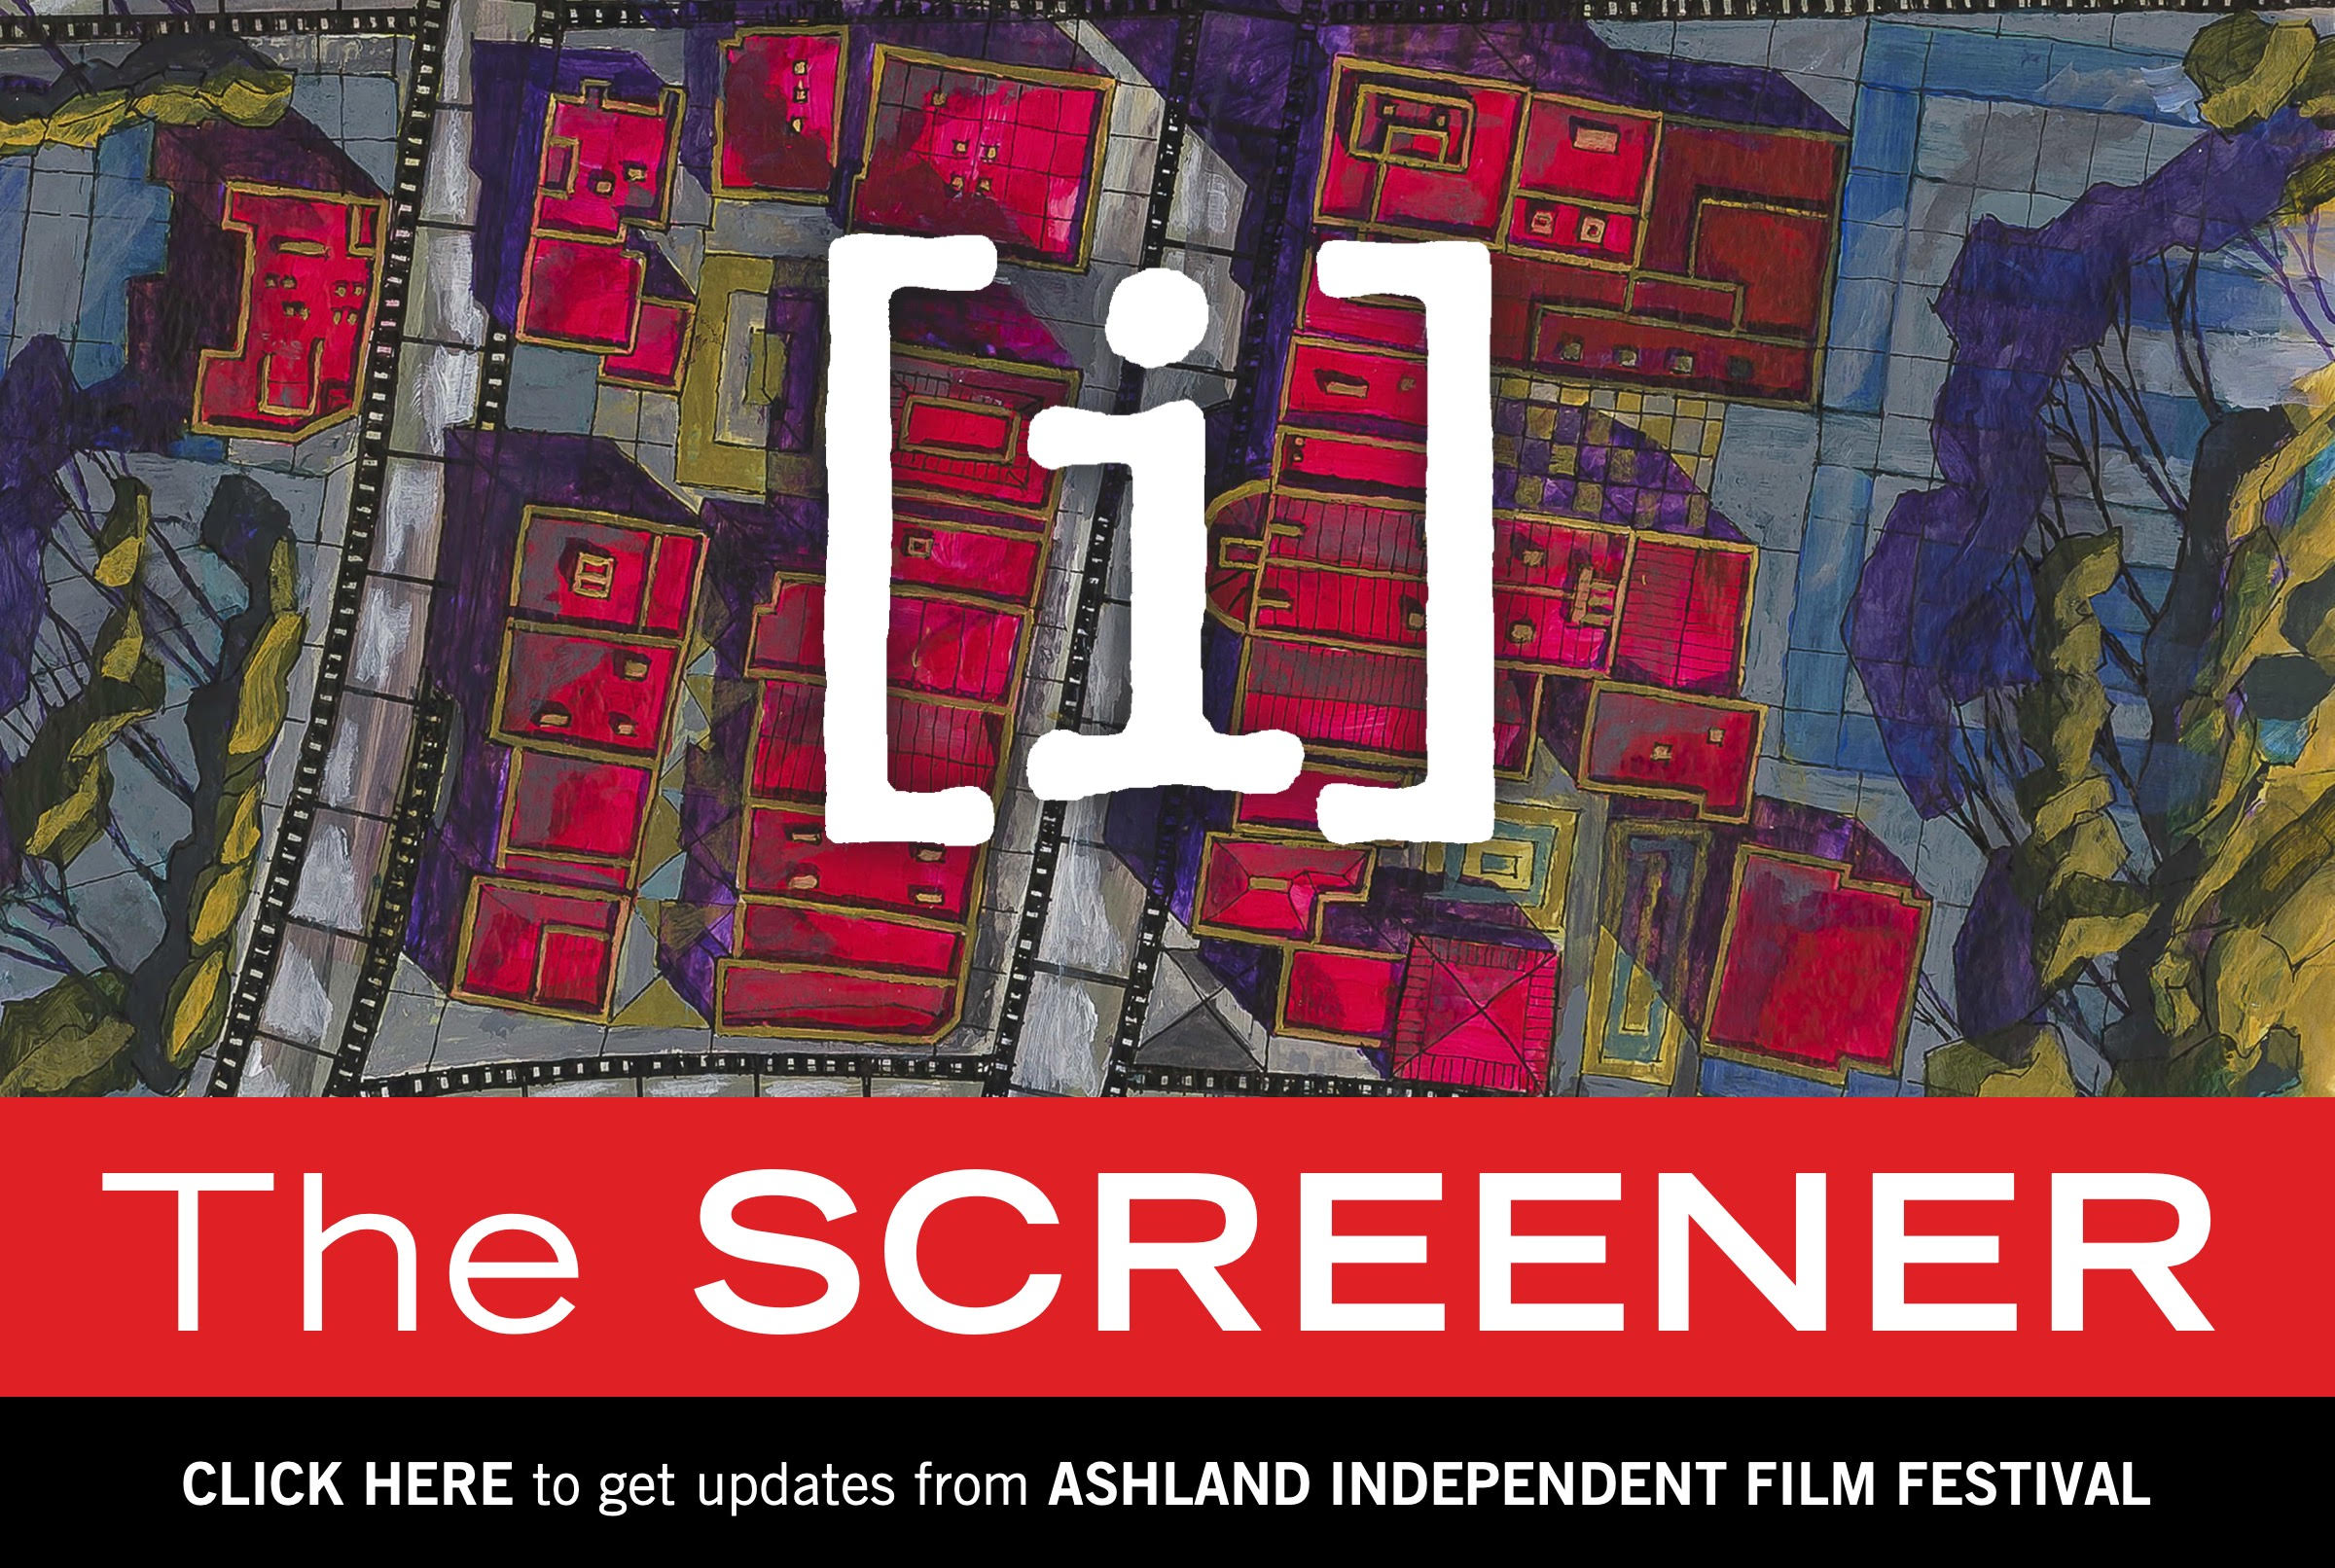 Subscribe to The Screener